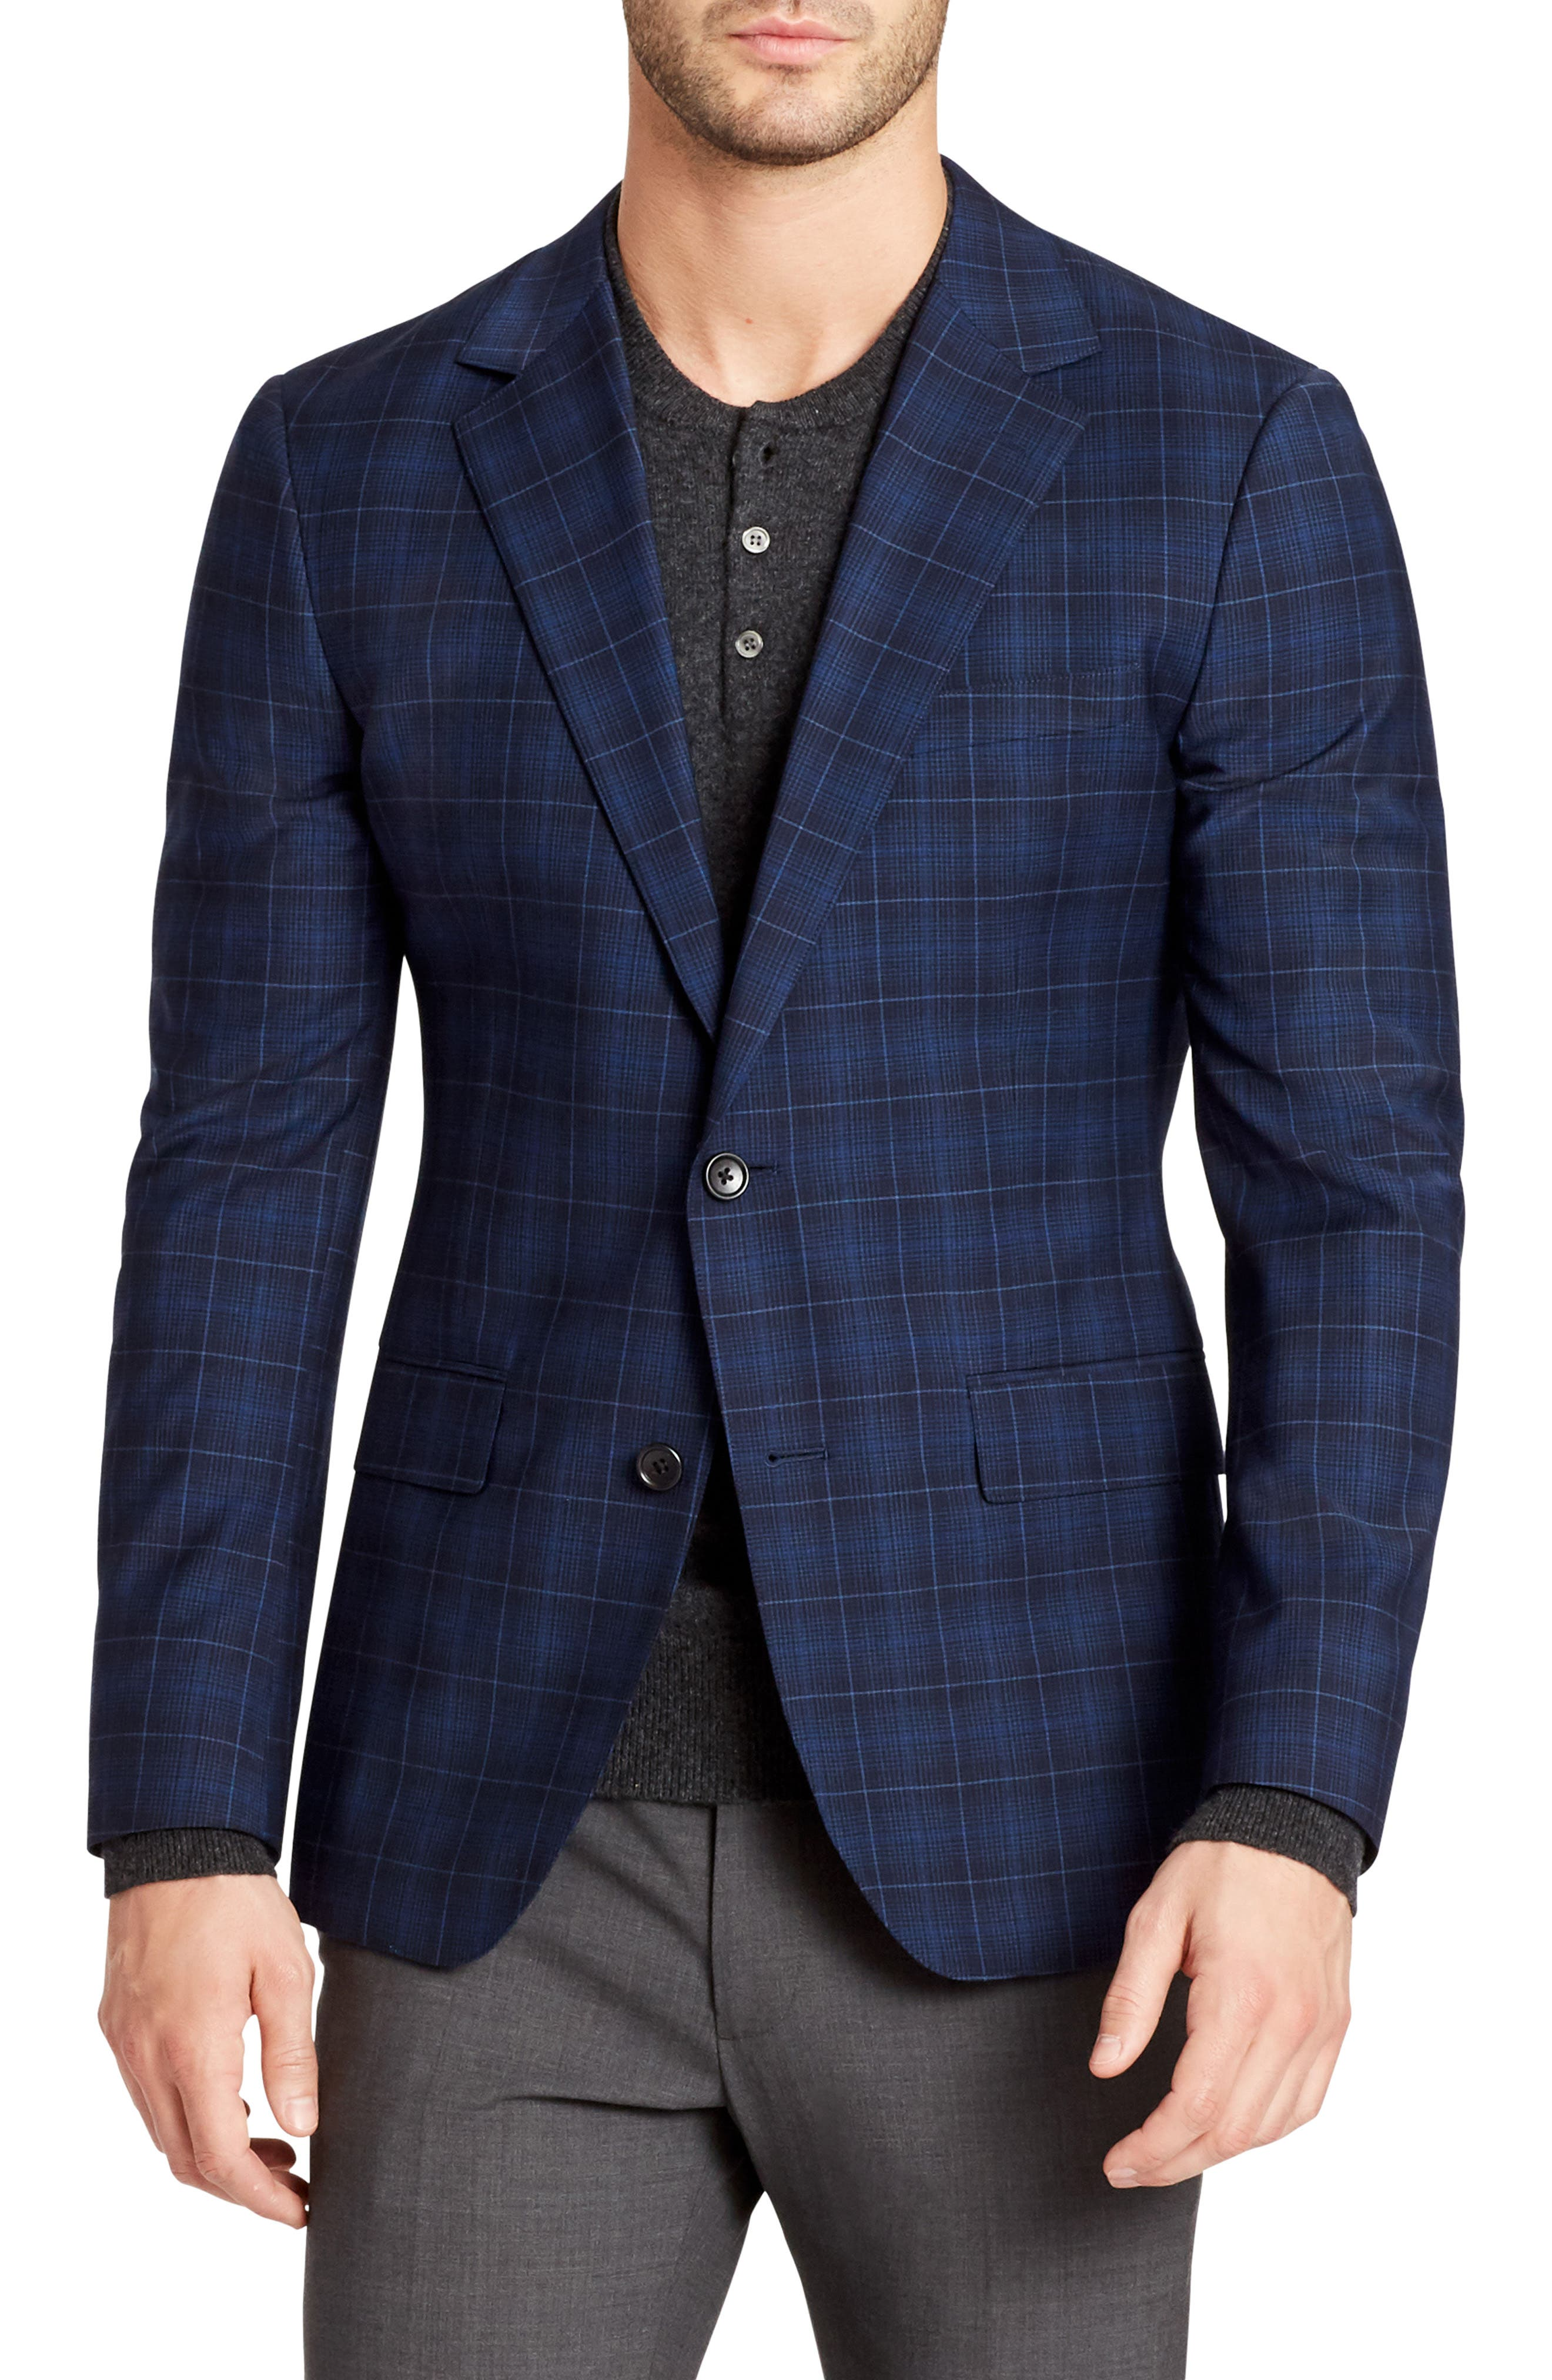 Main Image - Bonobos Jetsetter Slim Fit Plaid Wool Sport Coat